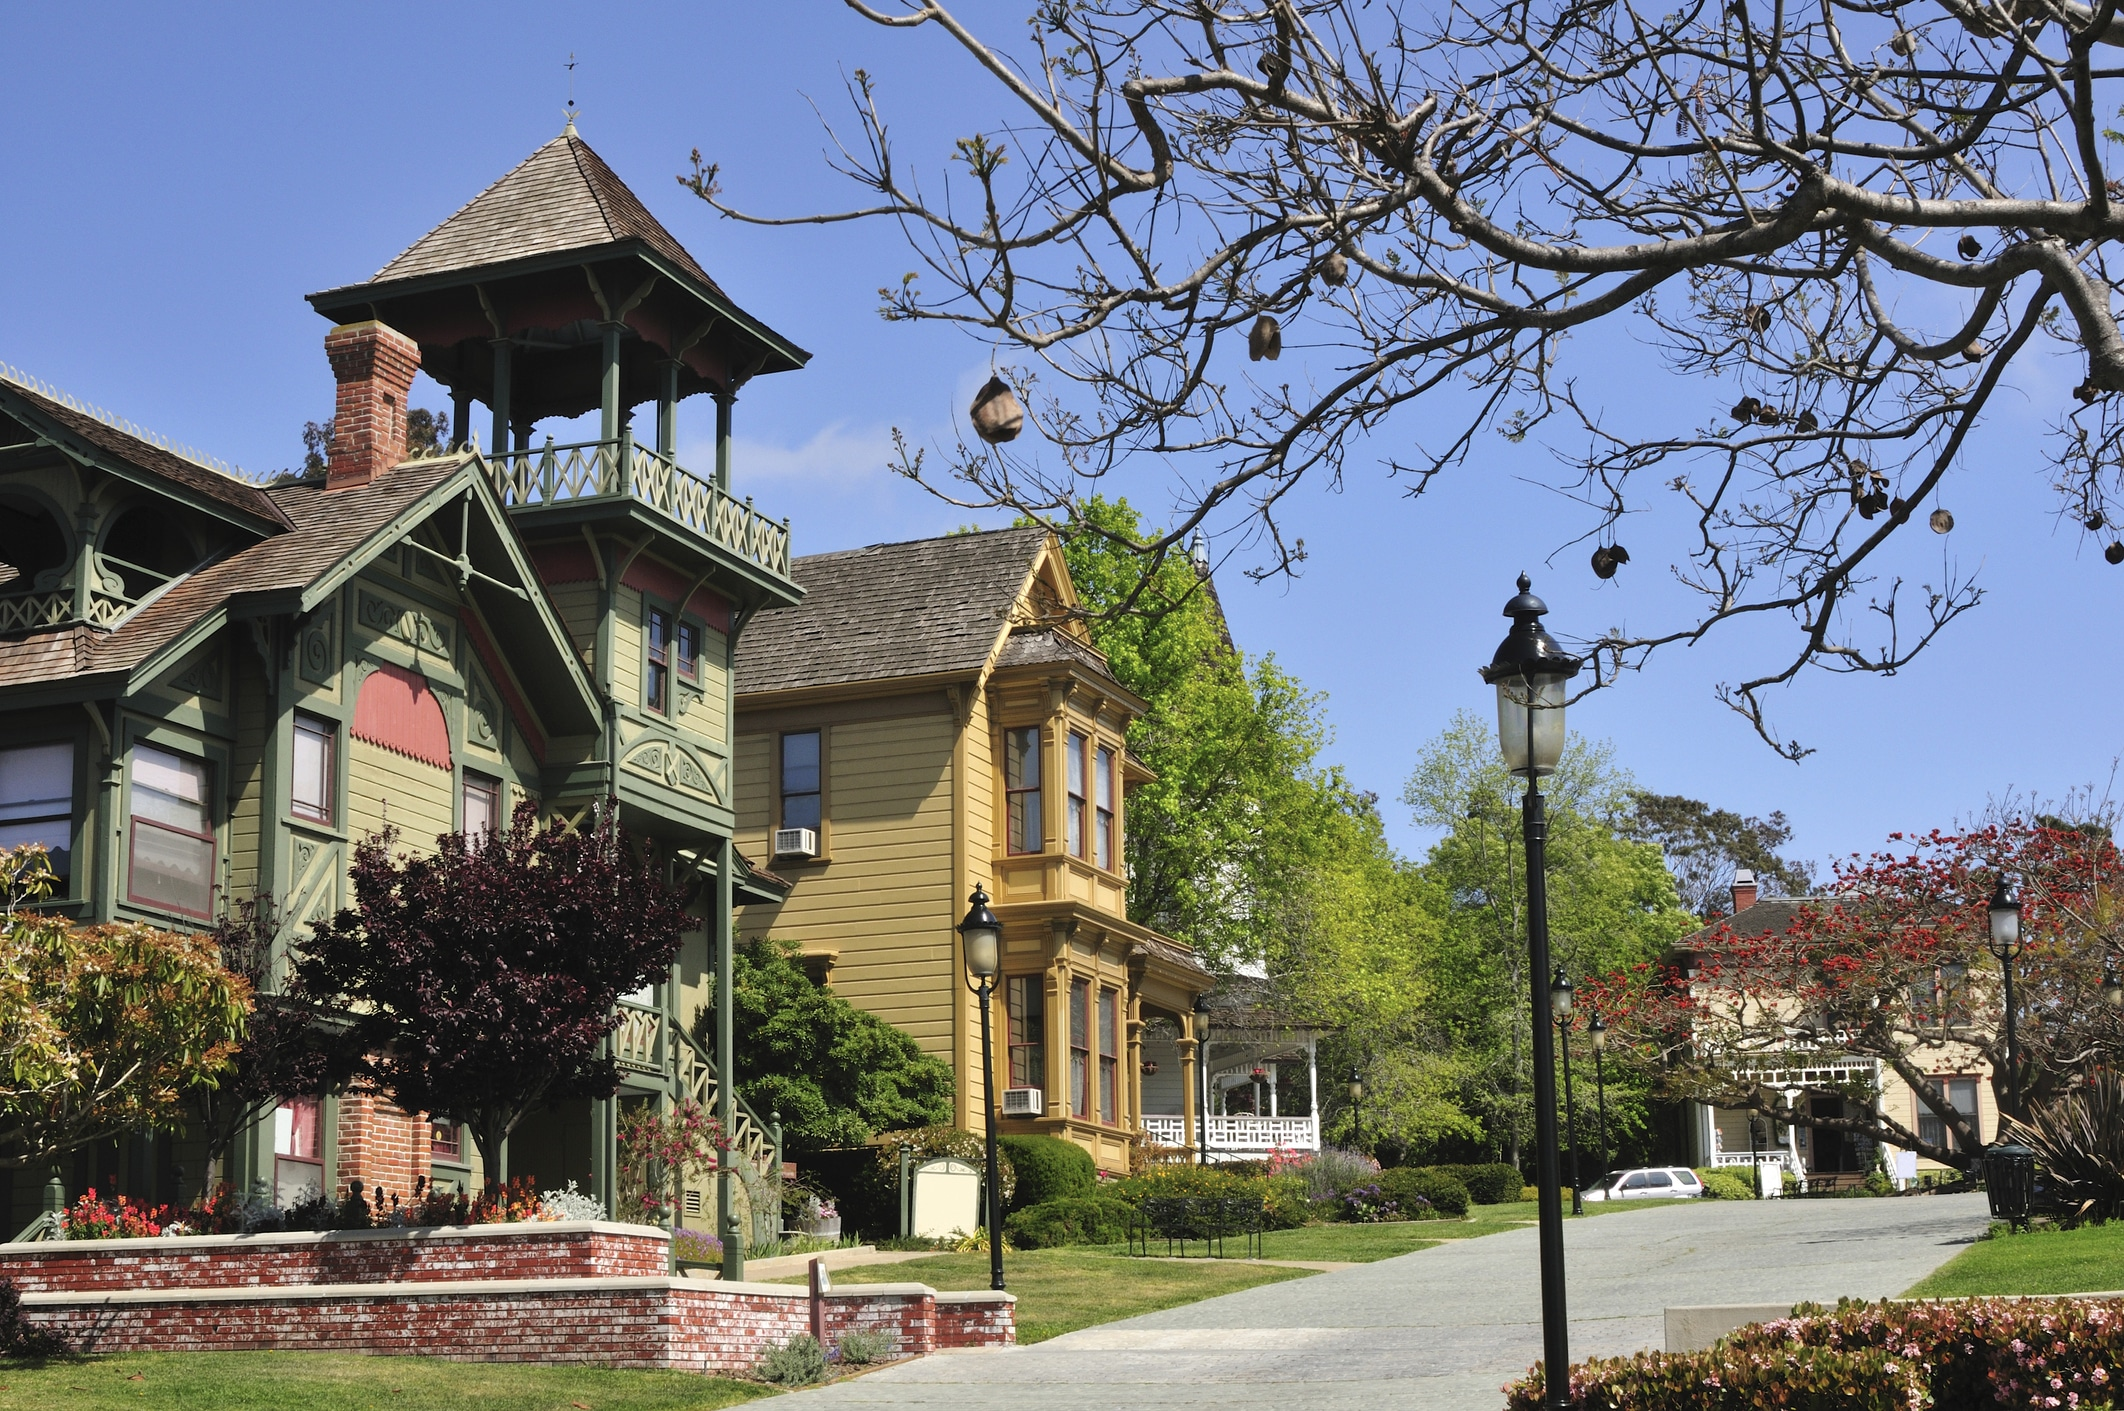 The Victorian homes inside Heritage Park, adjacent to Old Town San Diego.